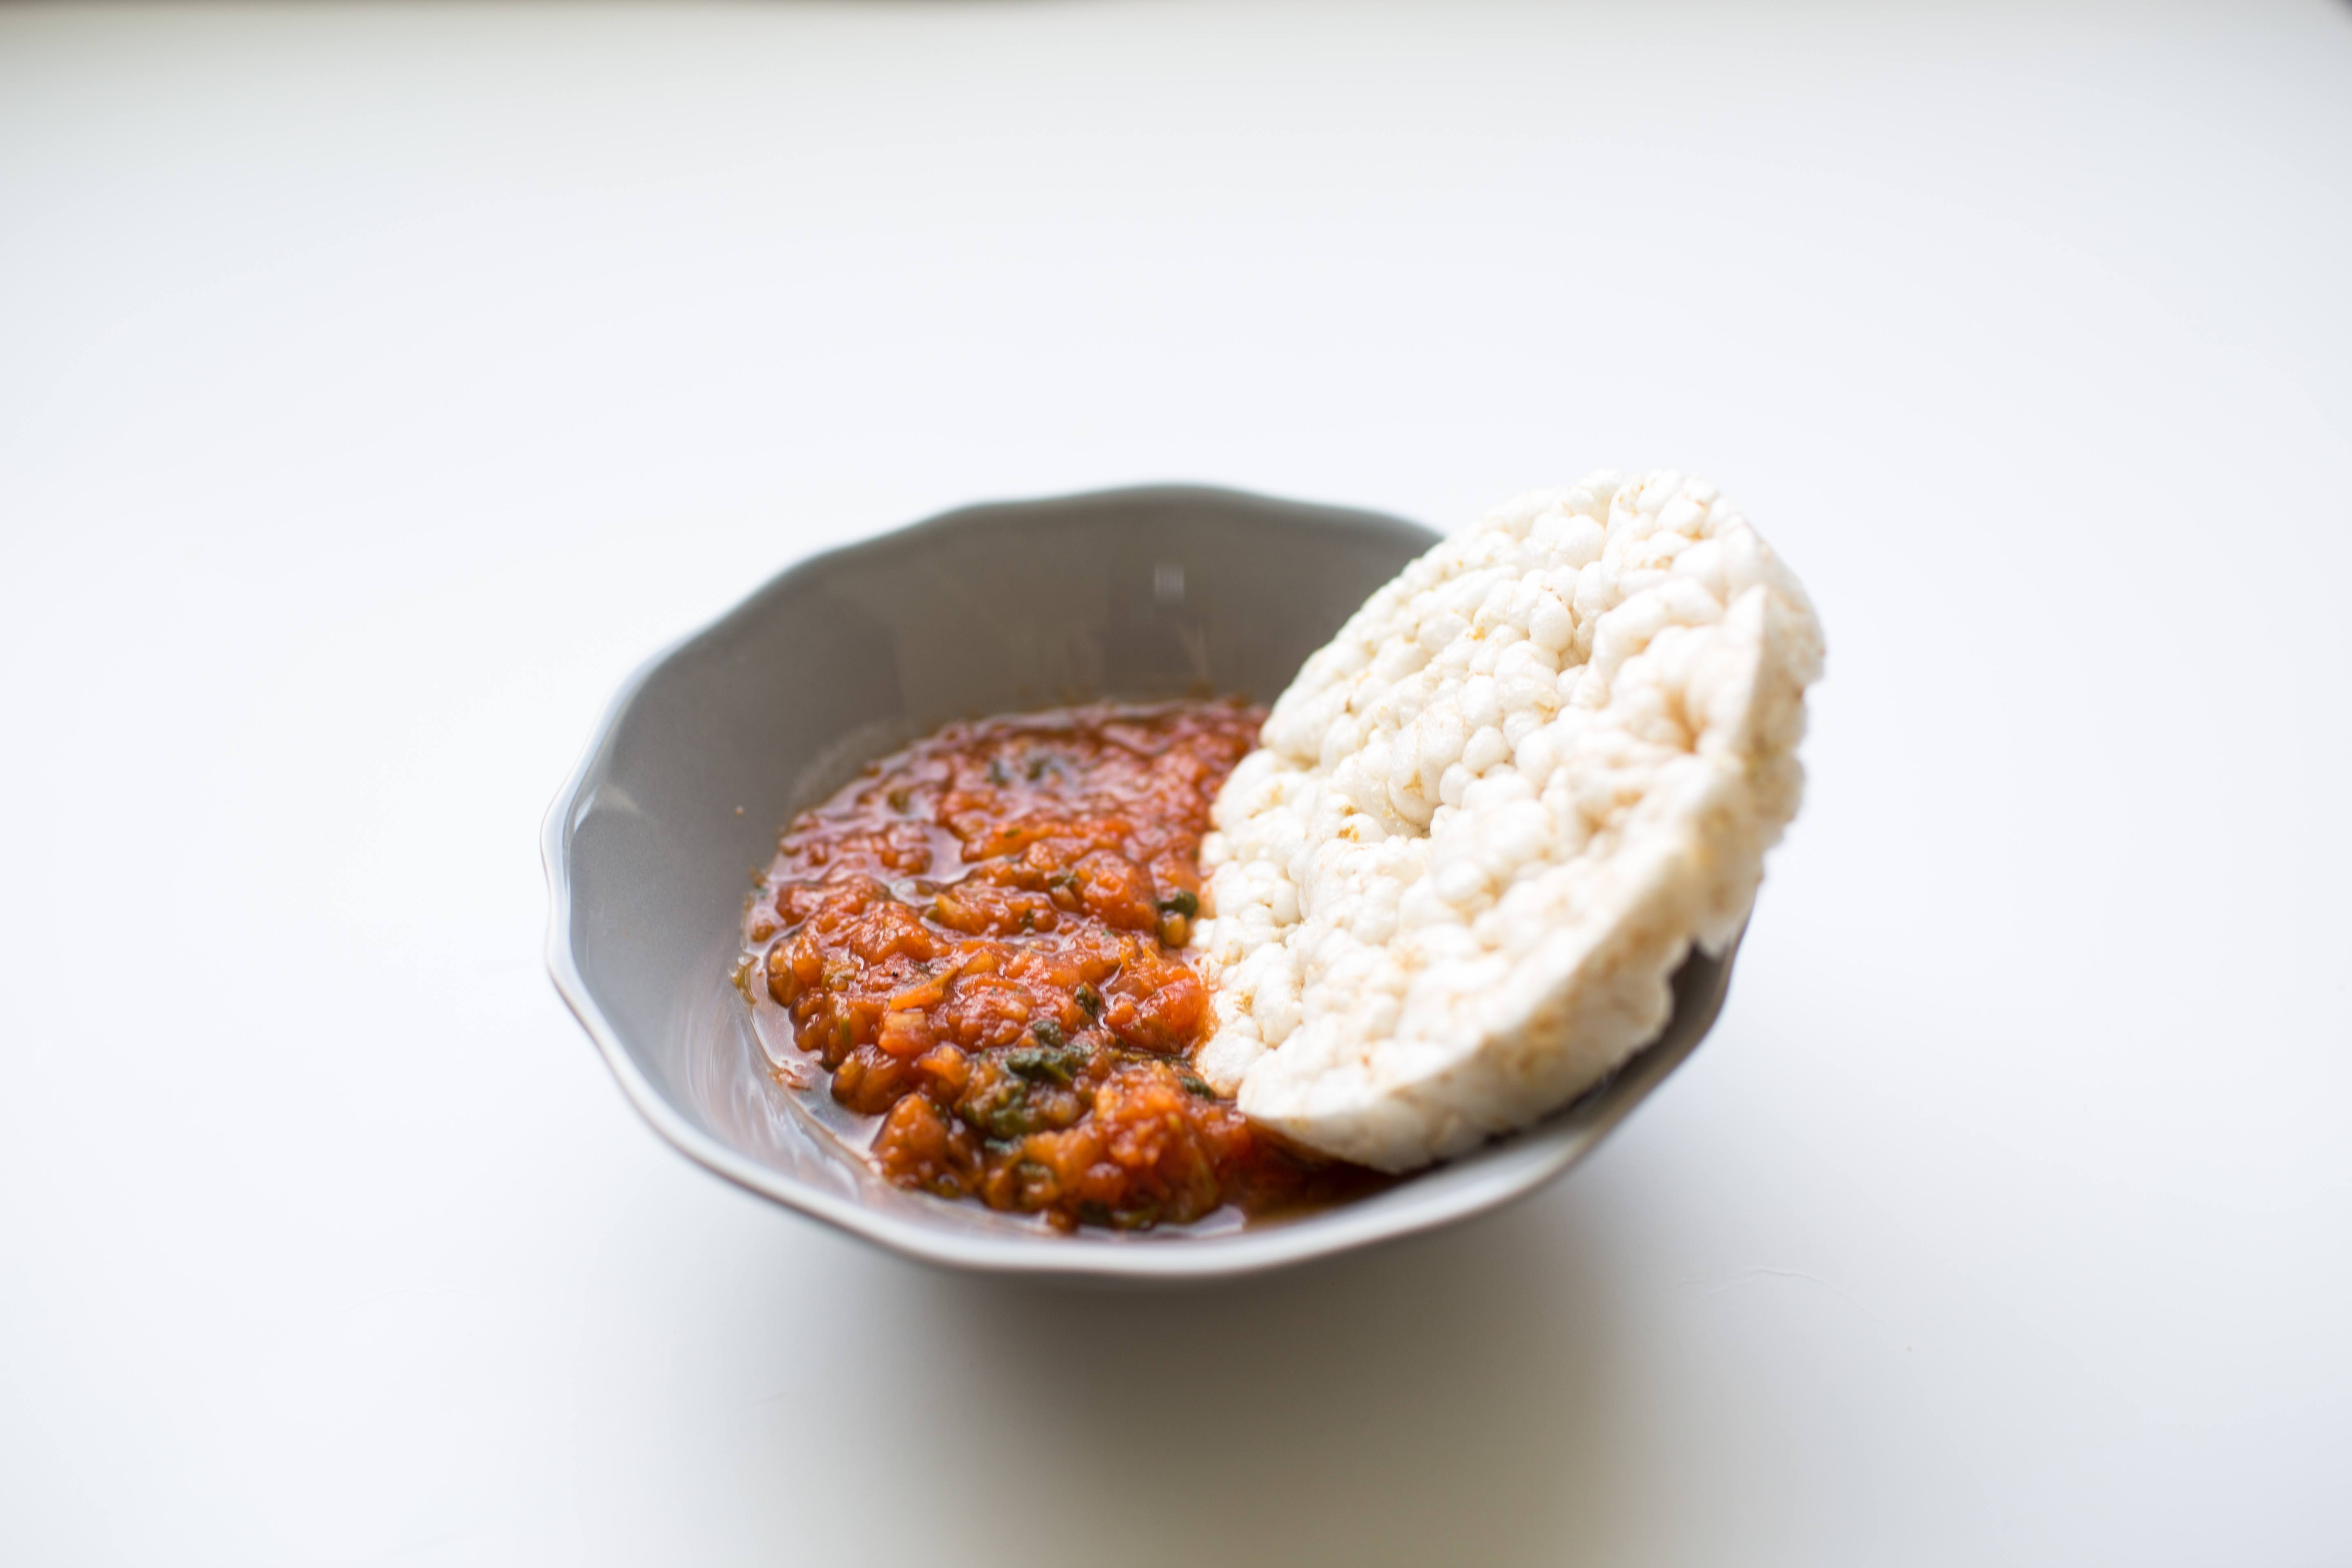 100 calorie snack rice cake and salsa